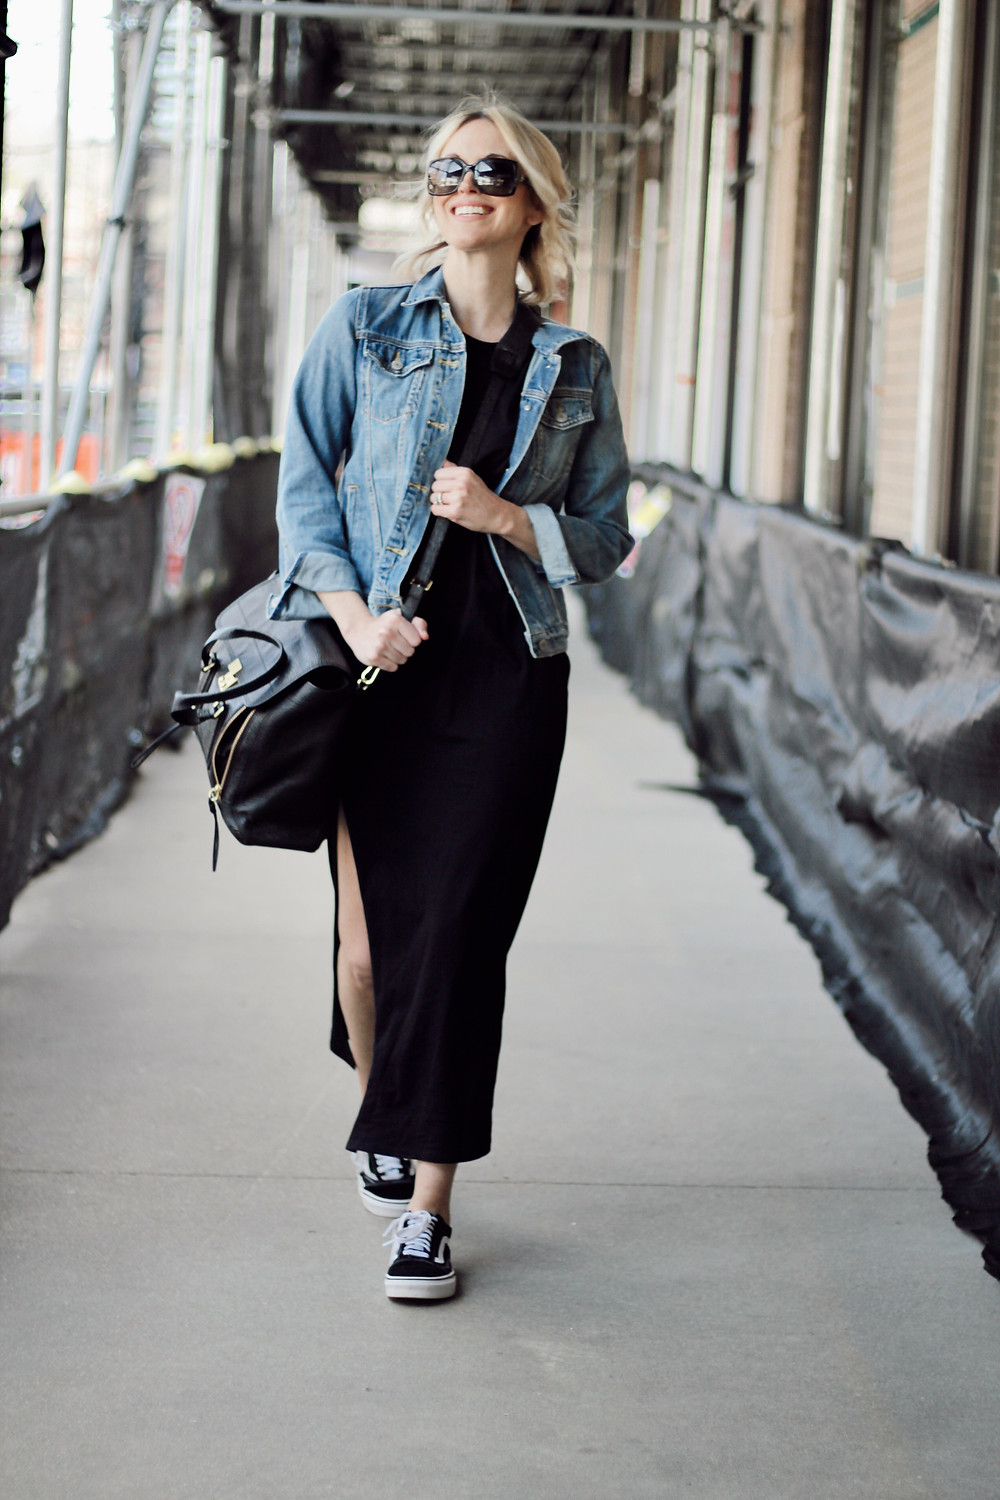 black maxi dress, denim jacket, old skool vans, philip lim pashli bag